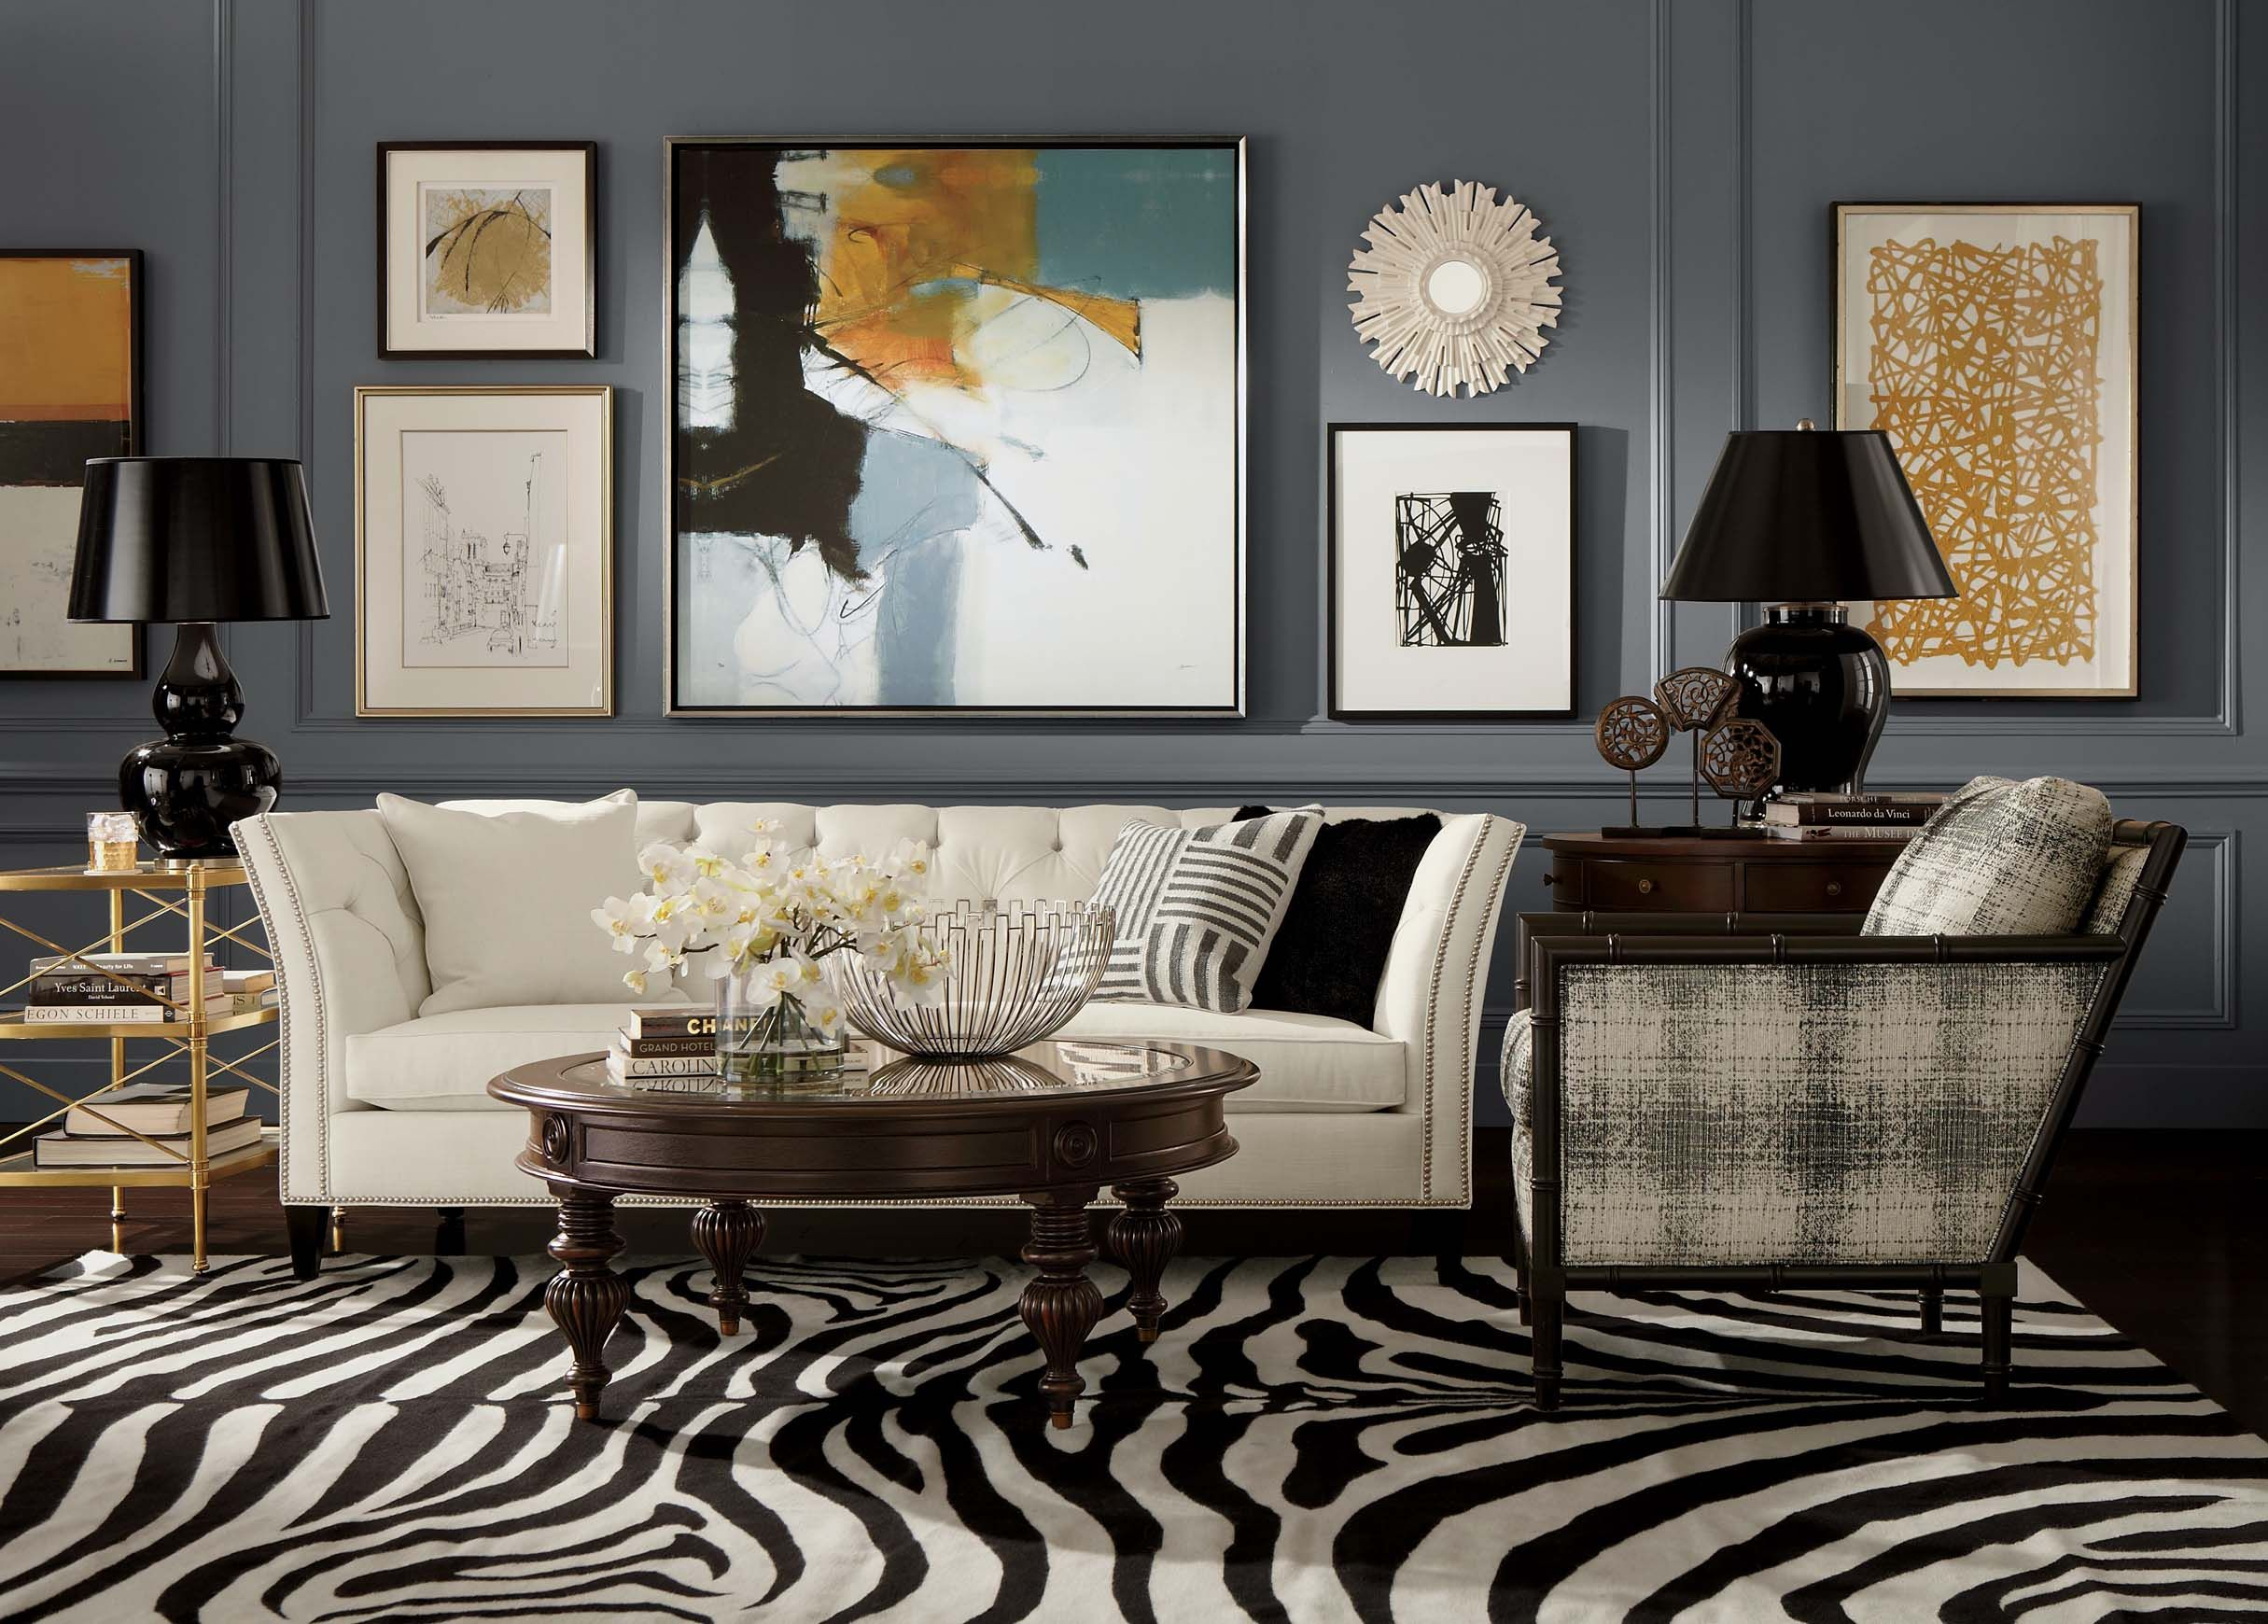 this ethan allen zebra rug in expresso/ivory gives this room some